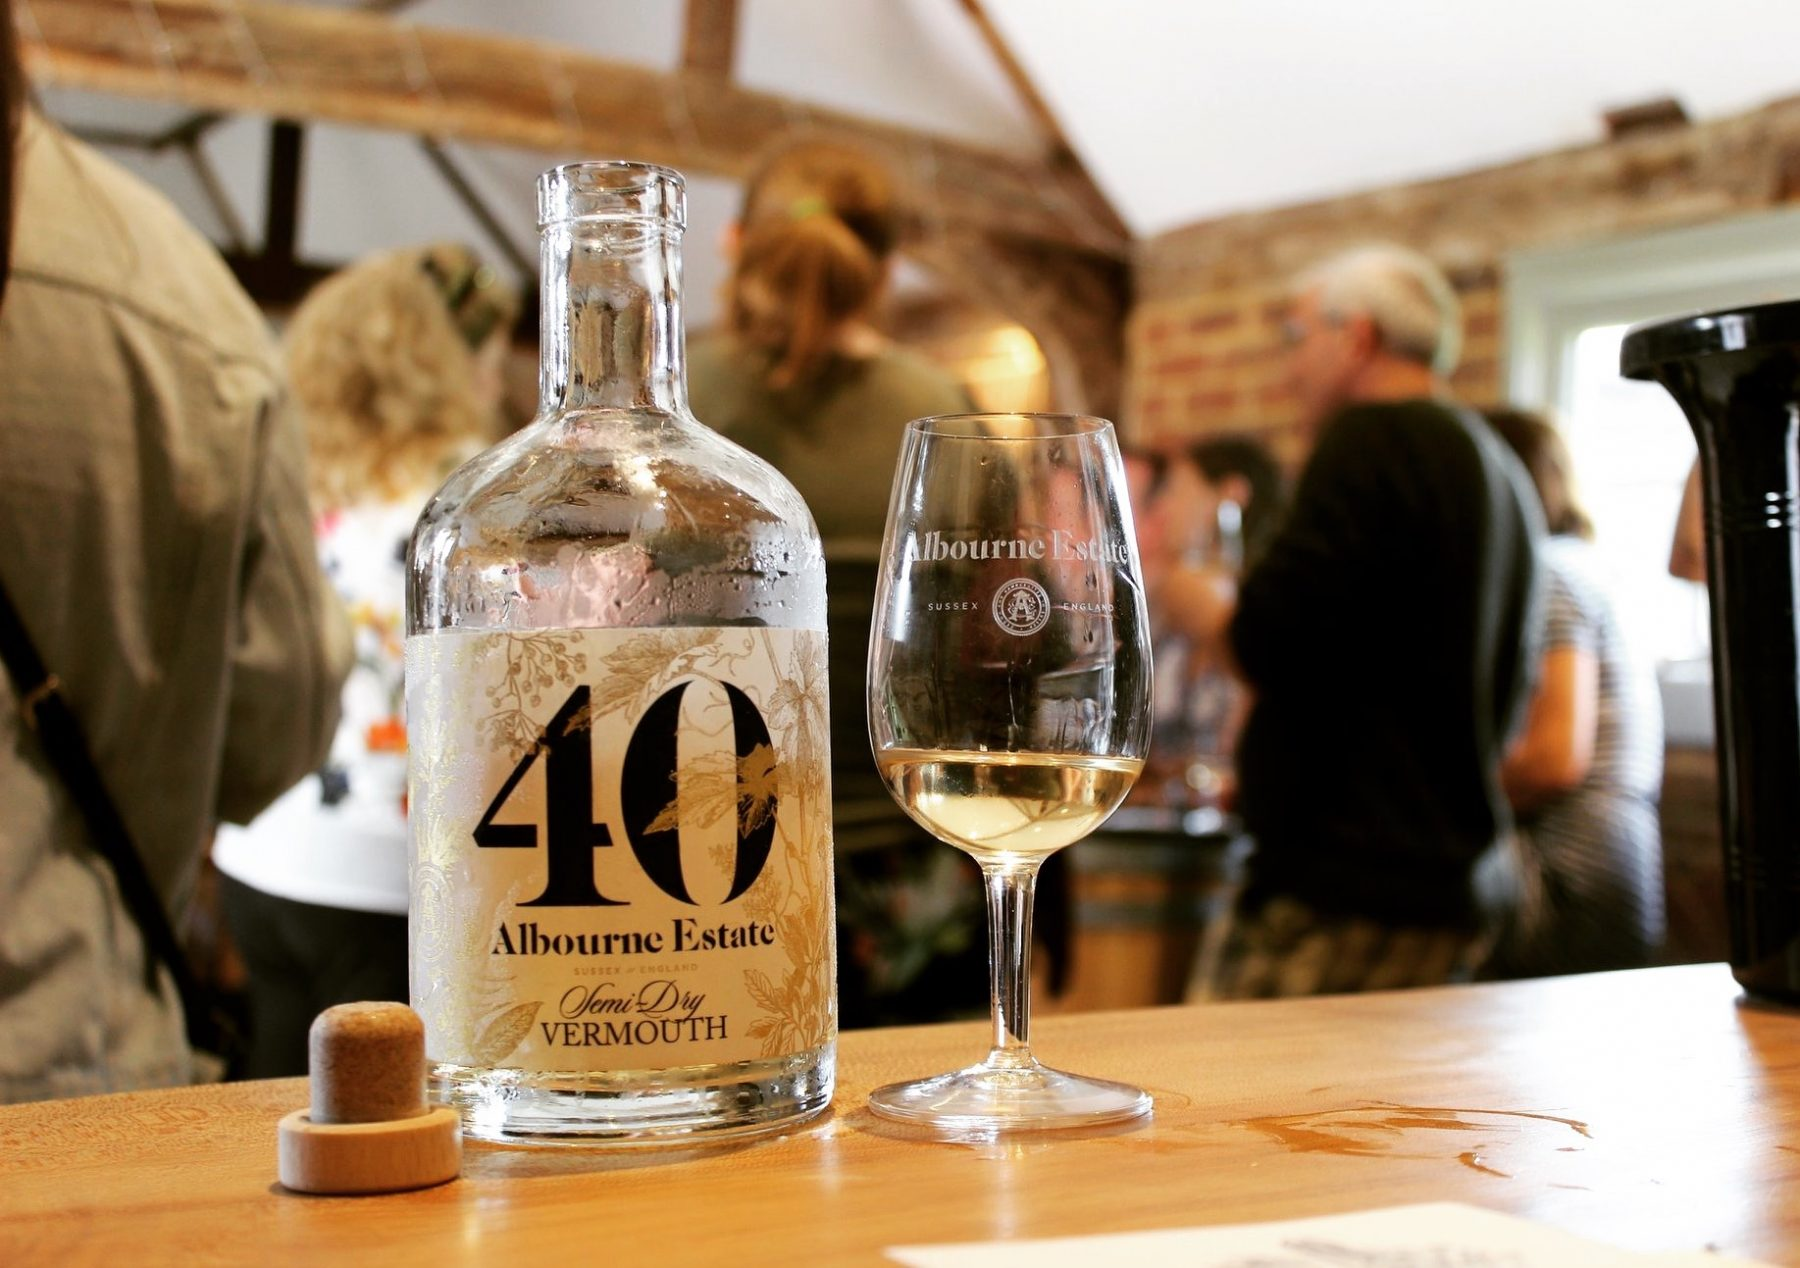 Albourne Estate Vermouth